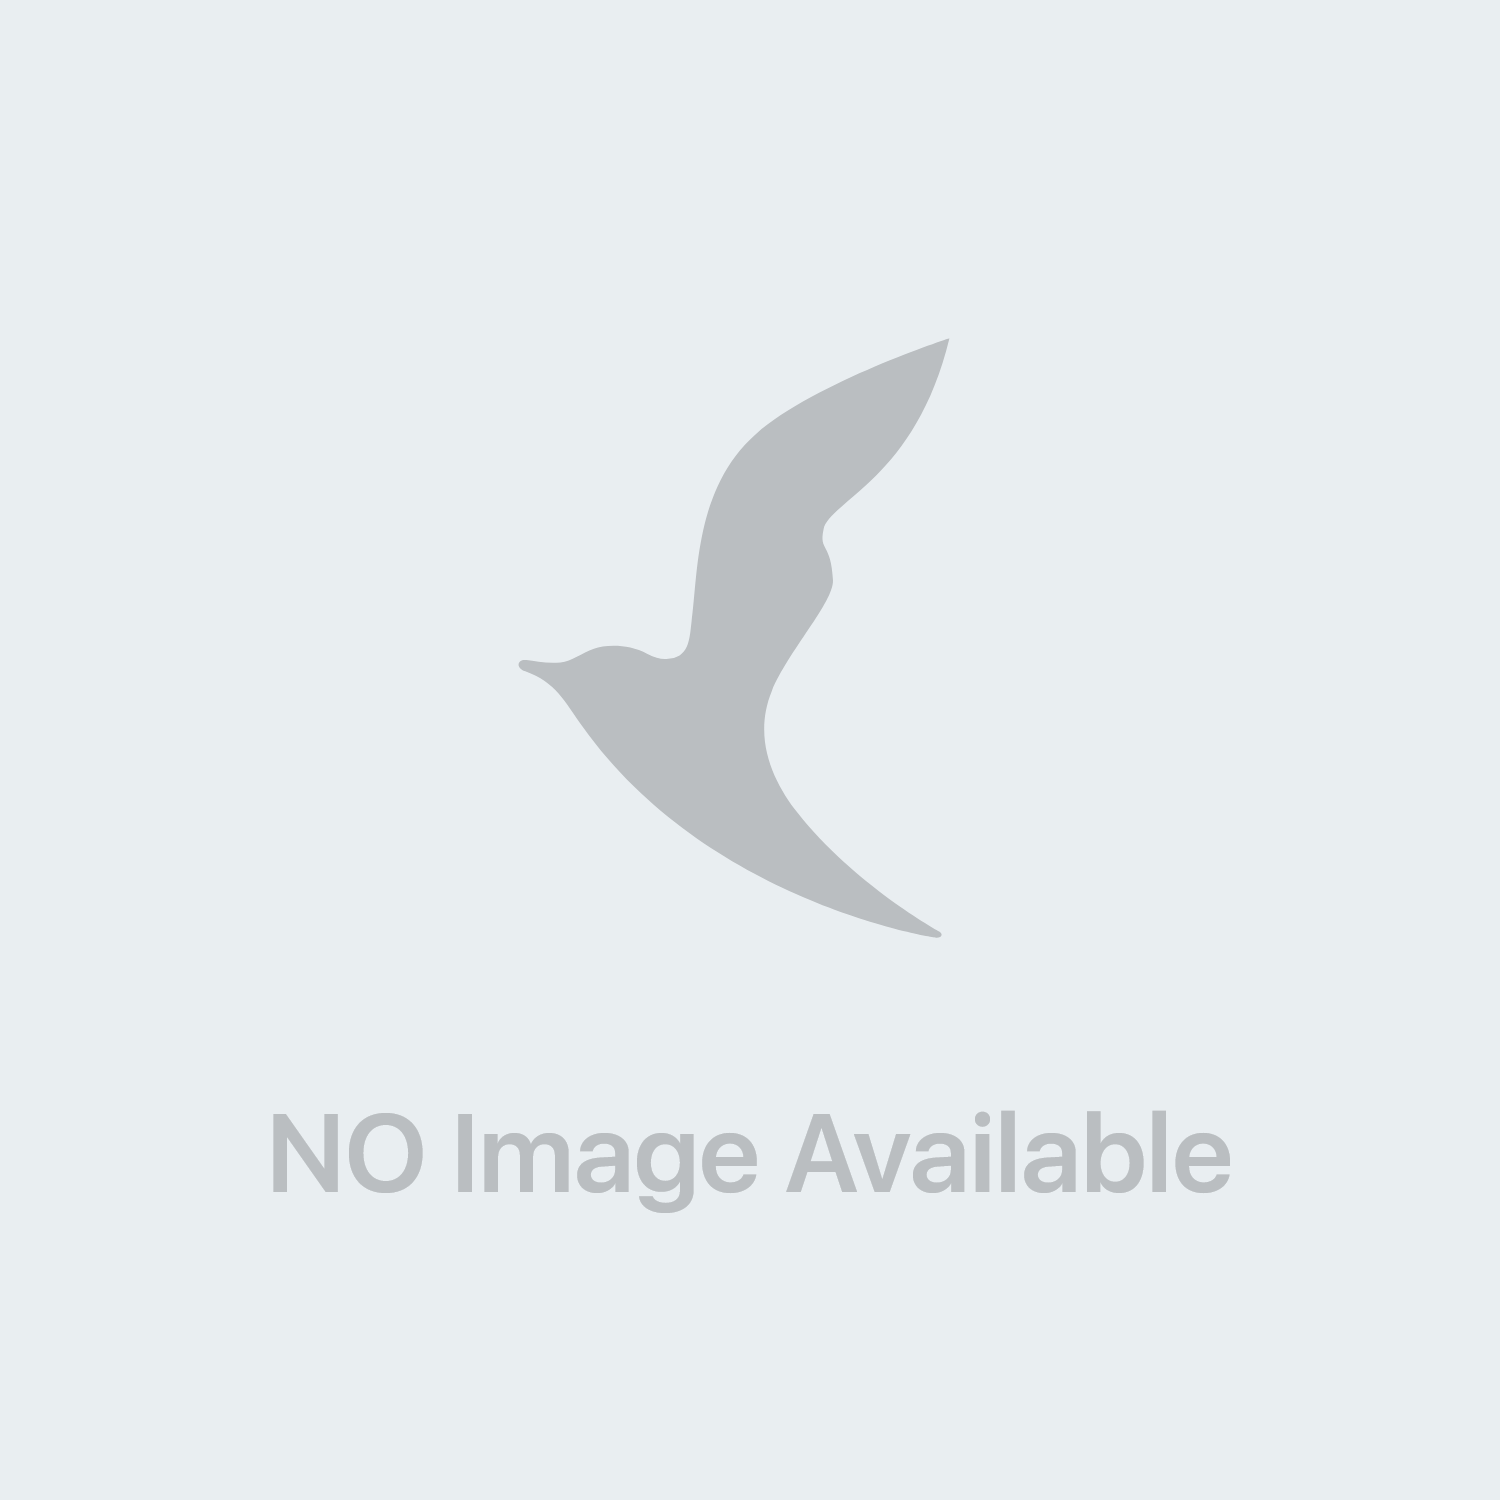 Kilocal Medical Slim Trattamento Dimagrante 30 Compresse